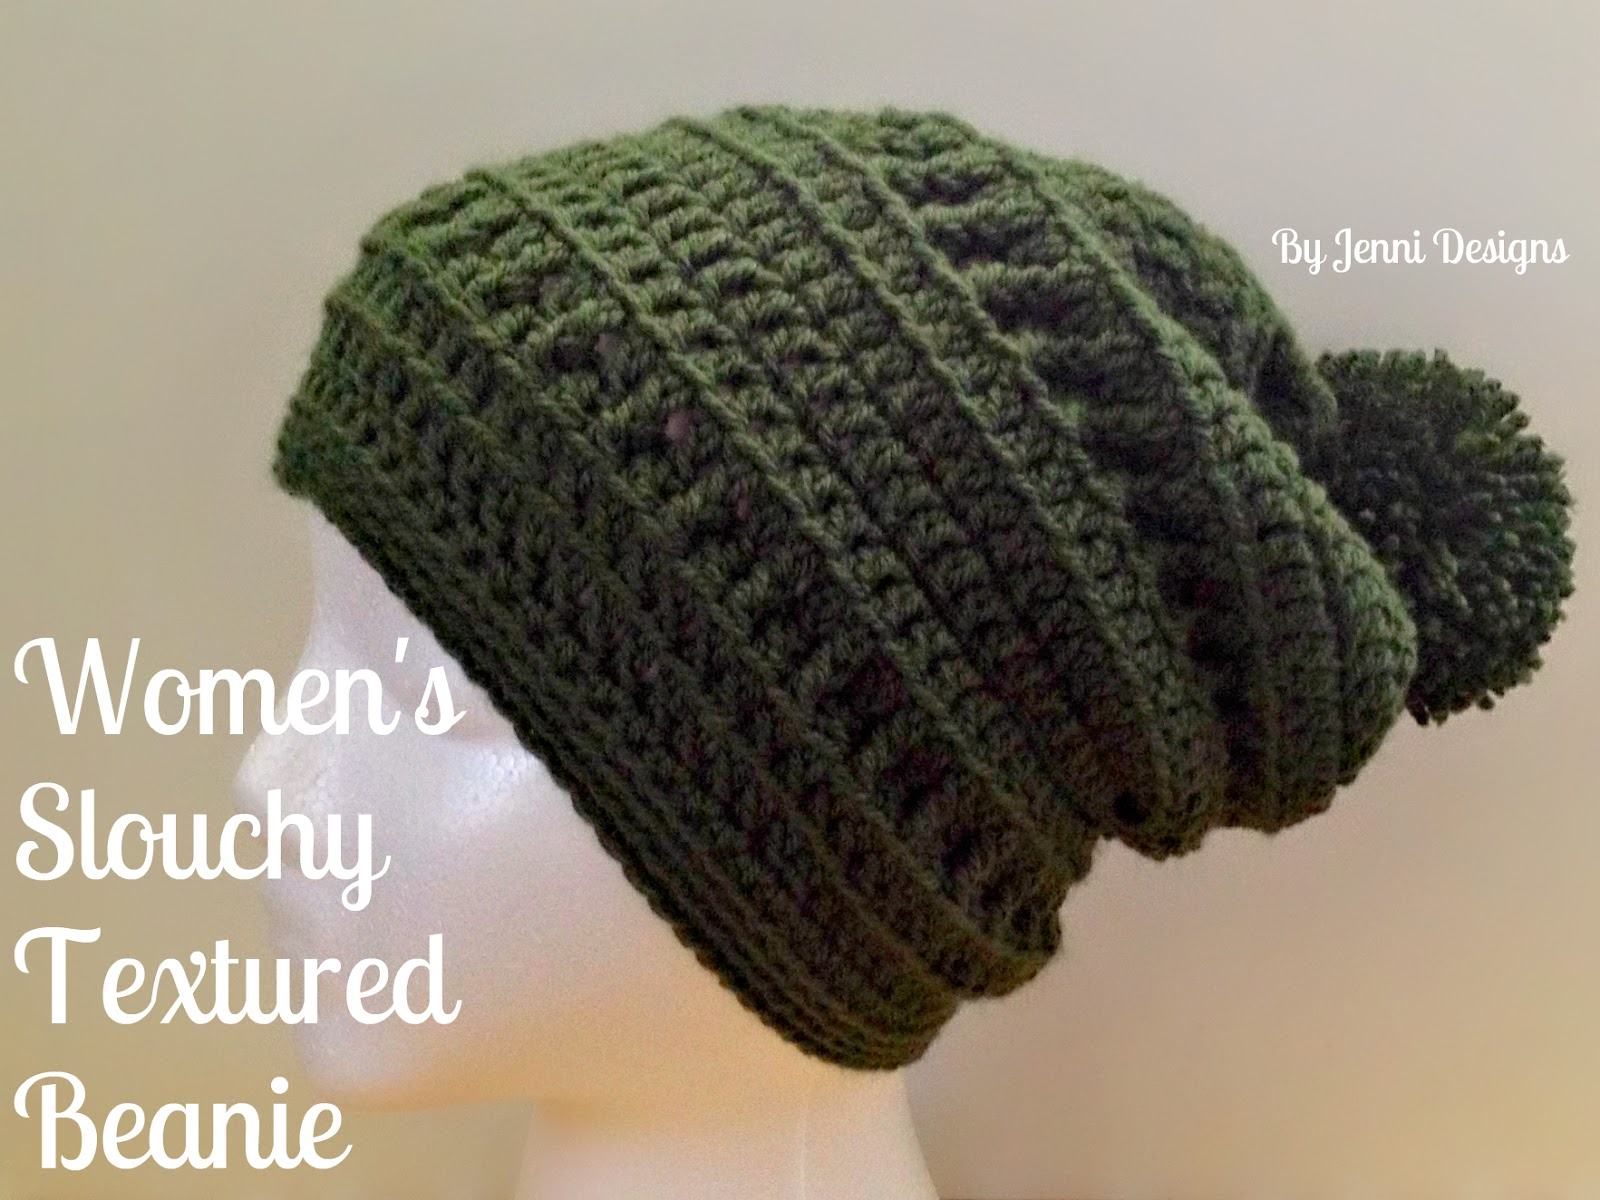 By Jenni Designs  Free Crochet Pattern  Women s Slouchy Textured Beanie 81cc2860f38